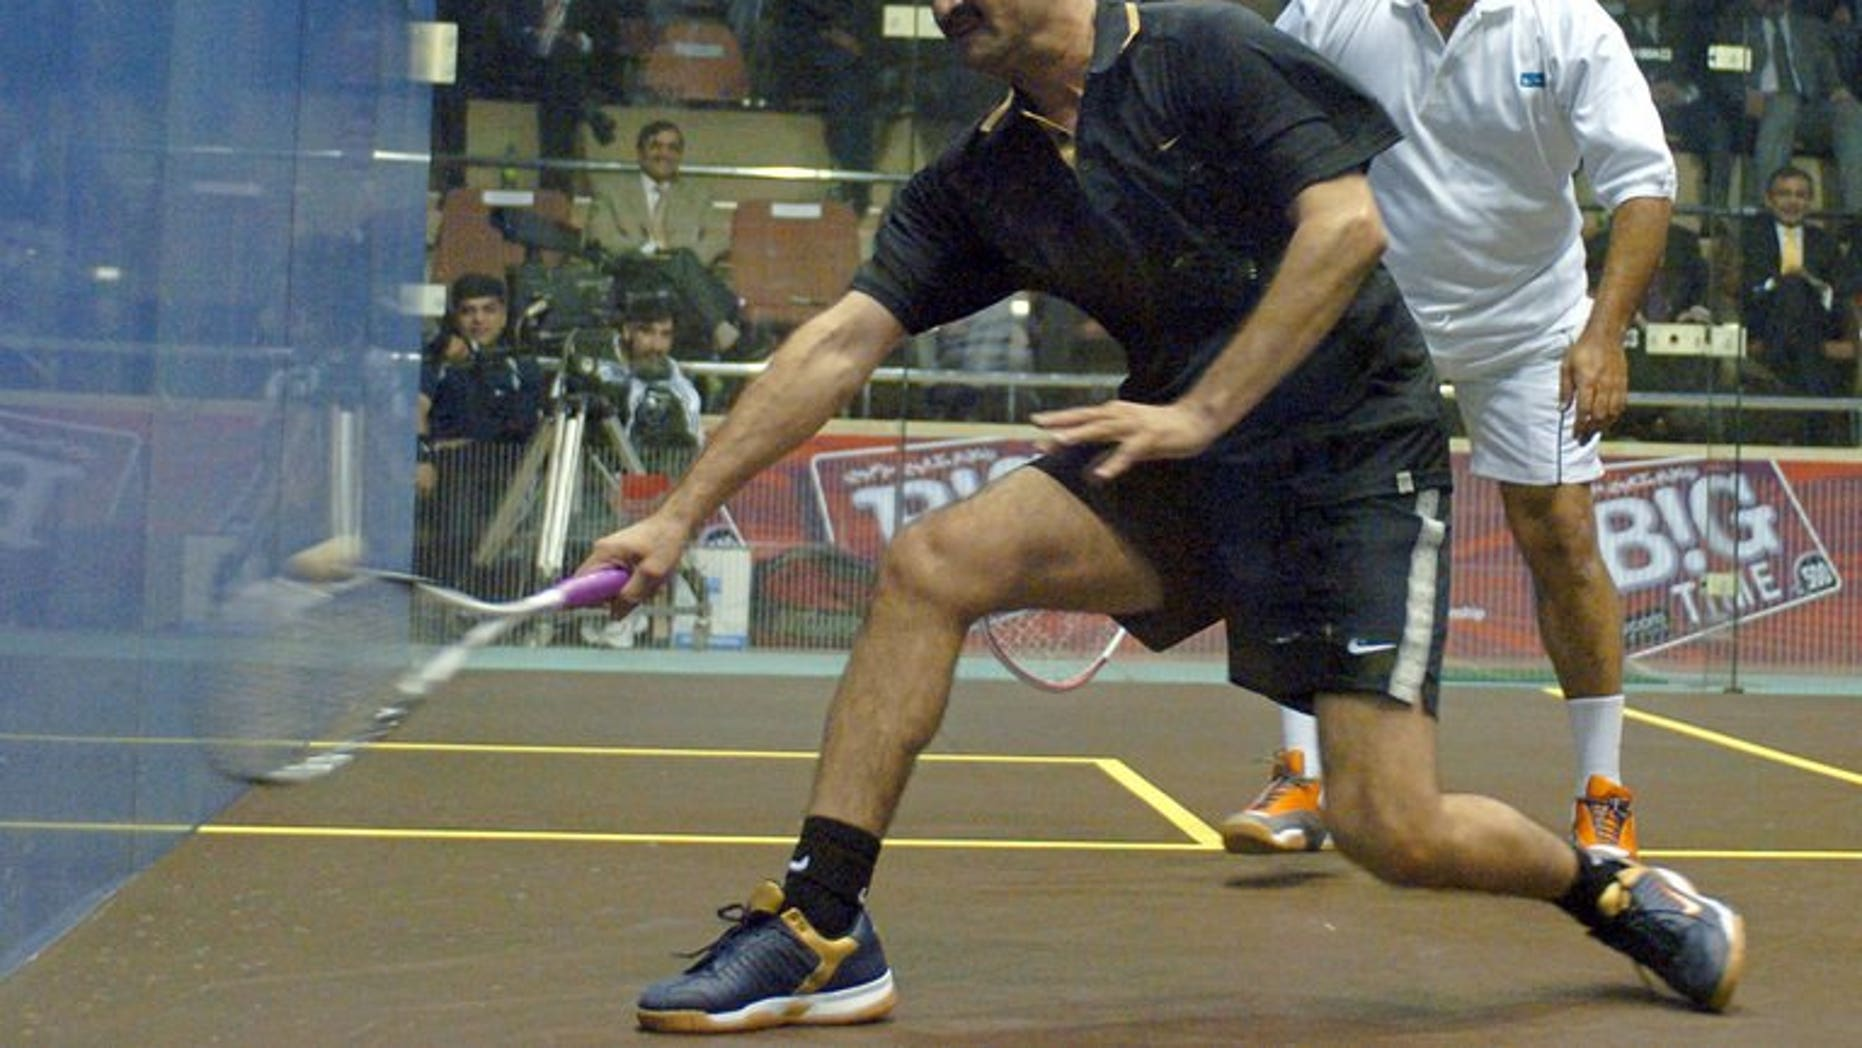 """Pakistani squash legends Jahangir Khan (right) and Jansher Khan play during a friendly match at the Mushaf Squash Complex in Islamabad, 14 December 2005. Khan says the country must do more to improve its image and stop the rest of the world thinking of Pakistanis as """"terrorists""""."""